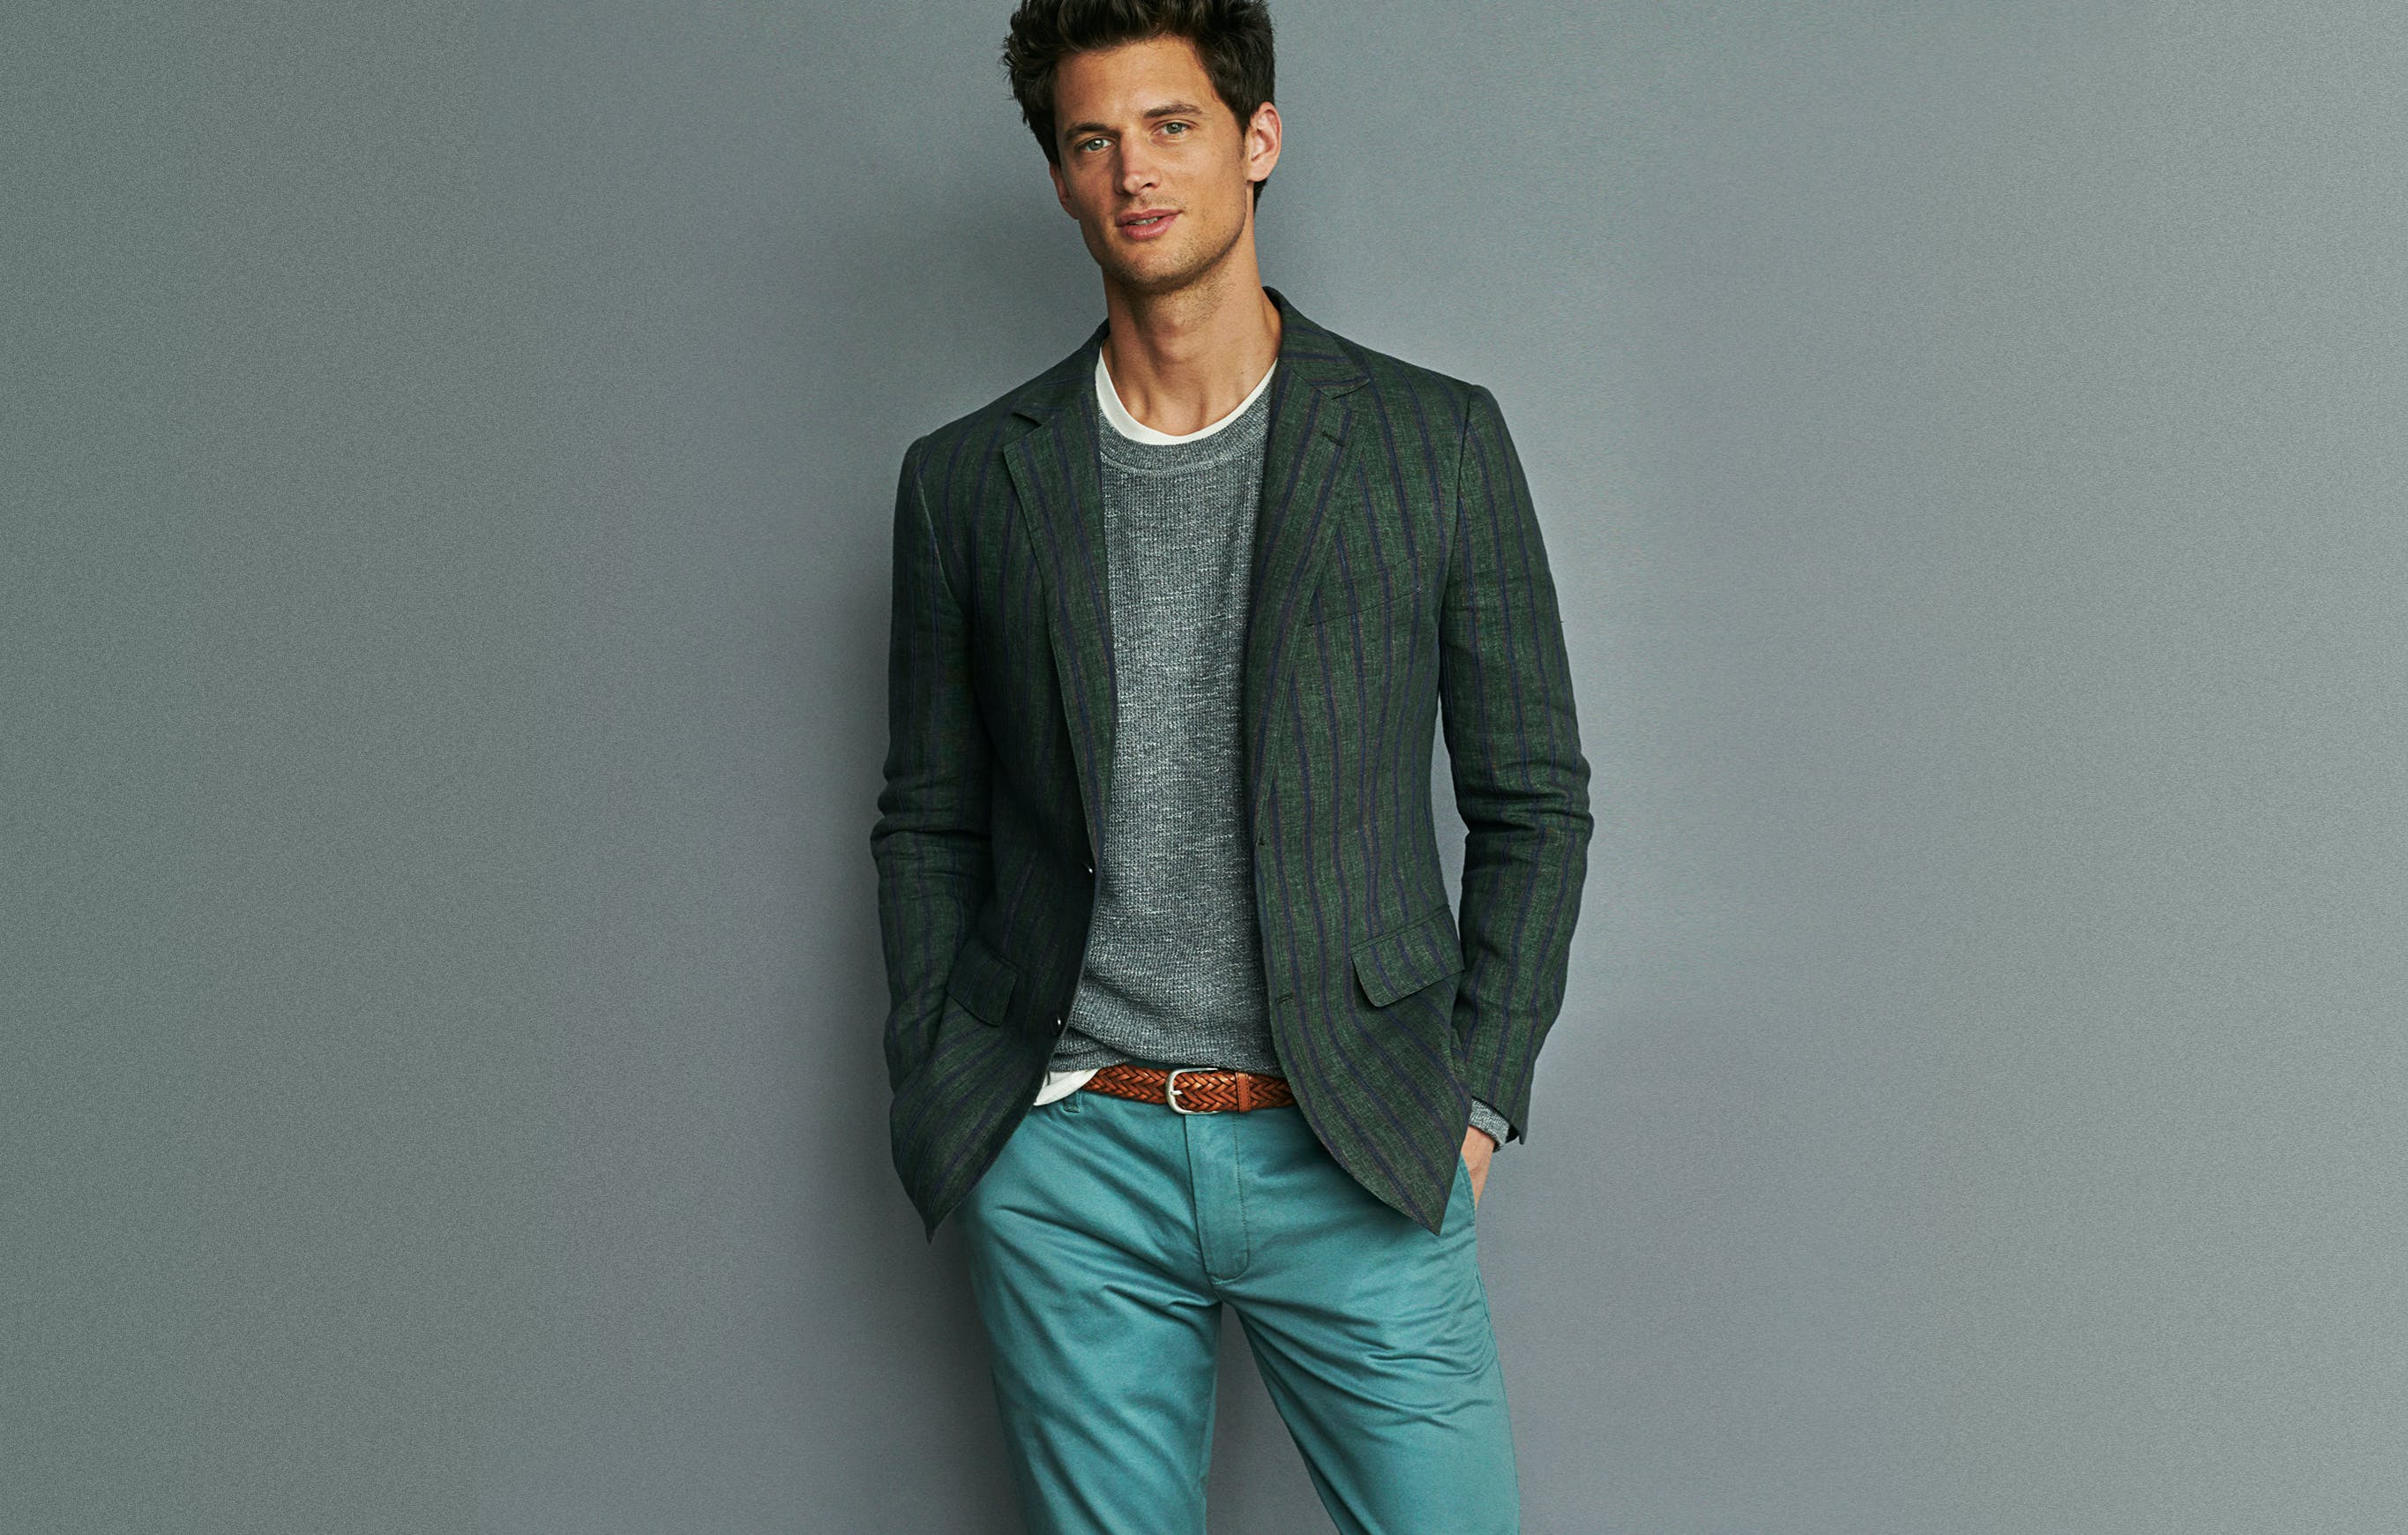 Want a look you can easily wear all season? Stick with tonal colors. These green-grey chinos are smart enough to pair with this green blazer and heather grey sweater.